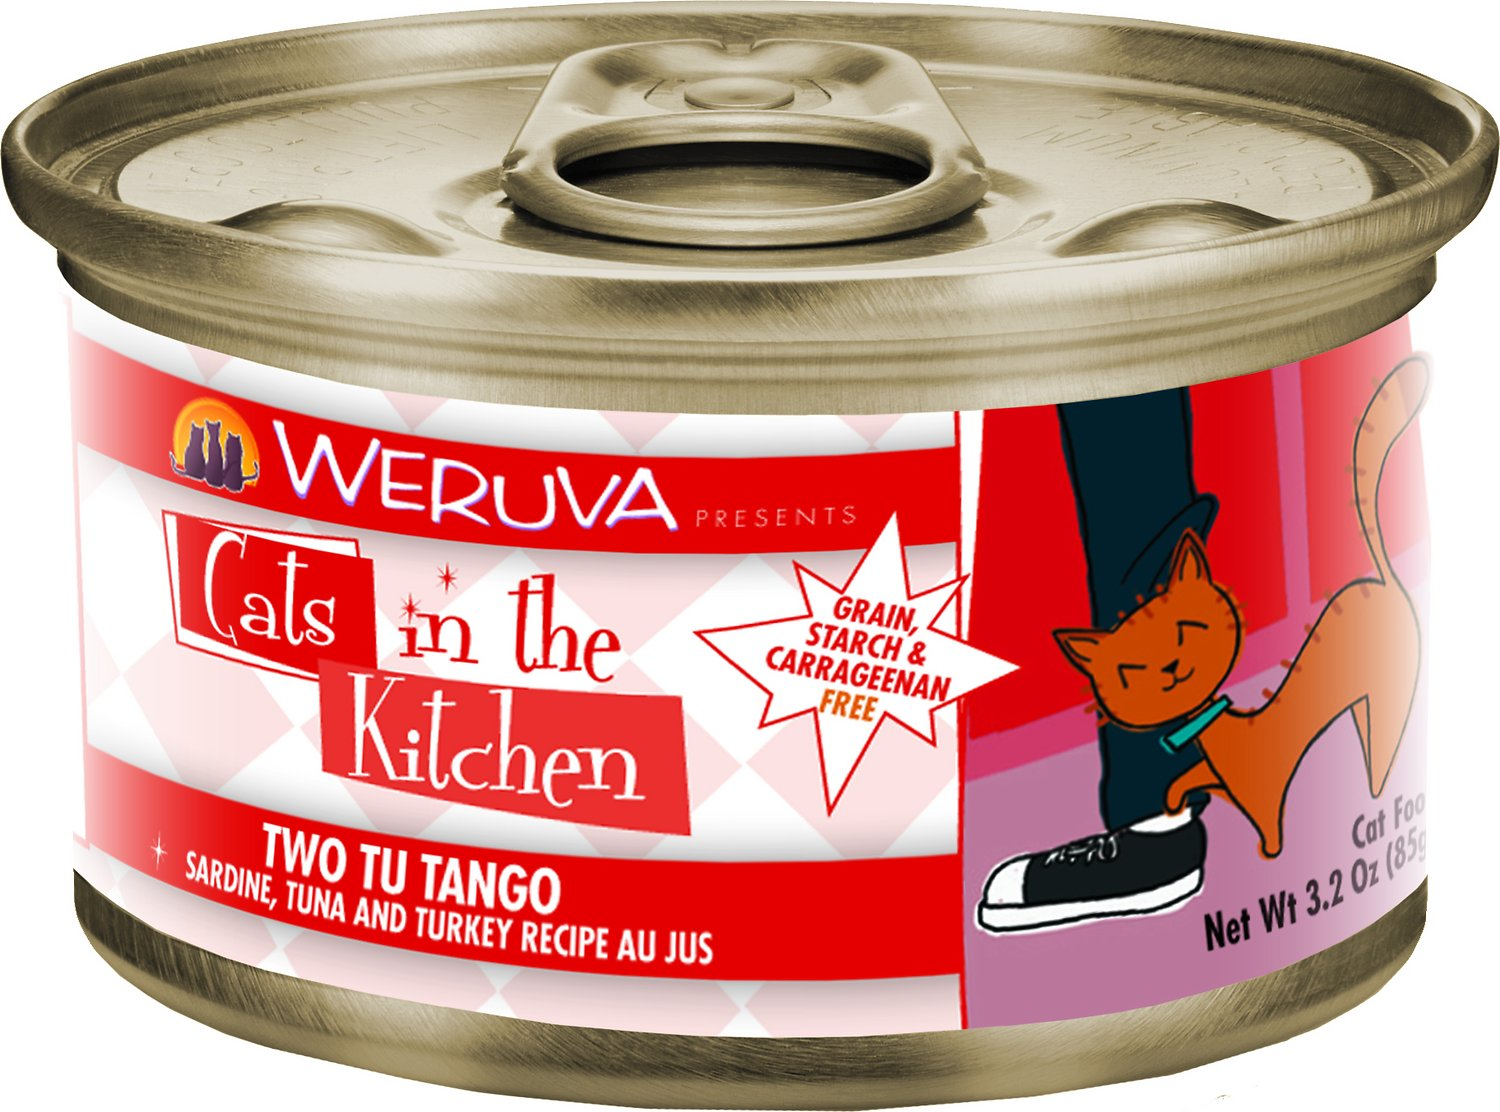 Weruva Cats in the Kitchen Two Tu Tango Sardine, Tuna & Turkey Au Jus Grain-Free Wet Cat Food, 6-oz